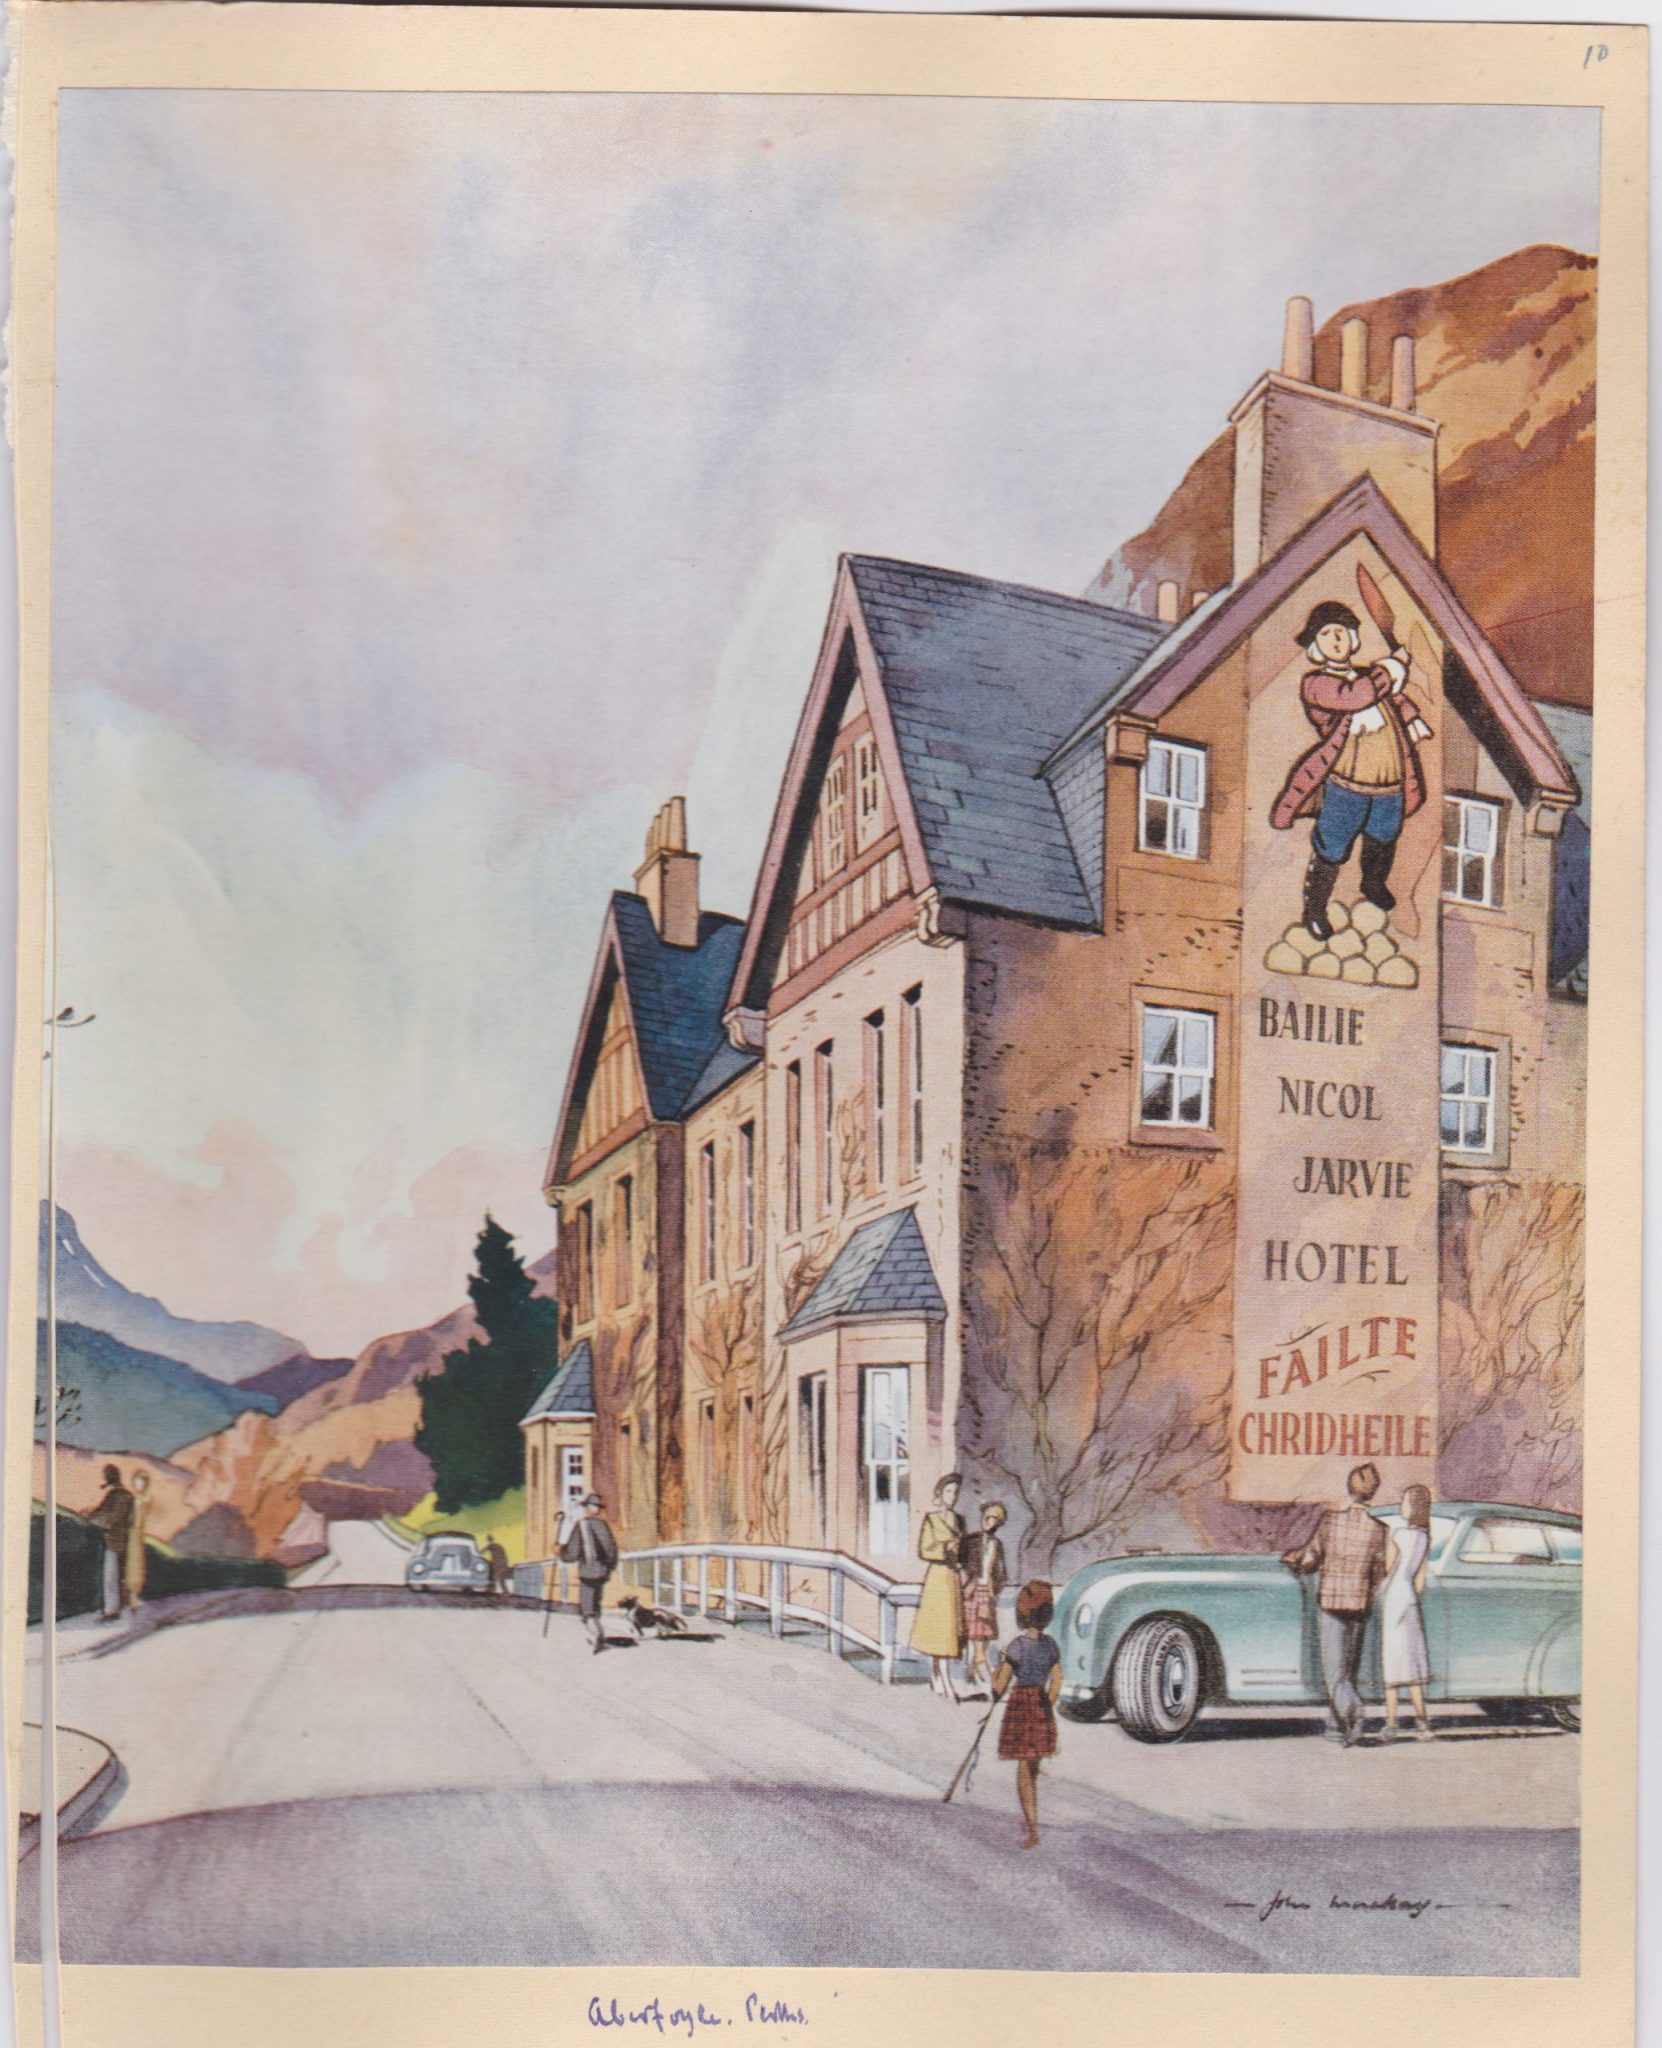 A watercoulour painting of Bailie Nicol Jarvie a Scottish hotel